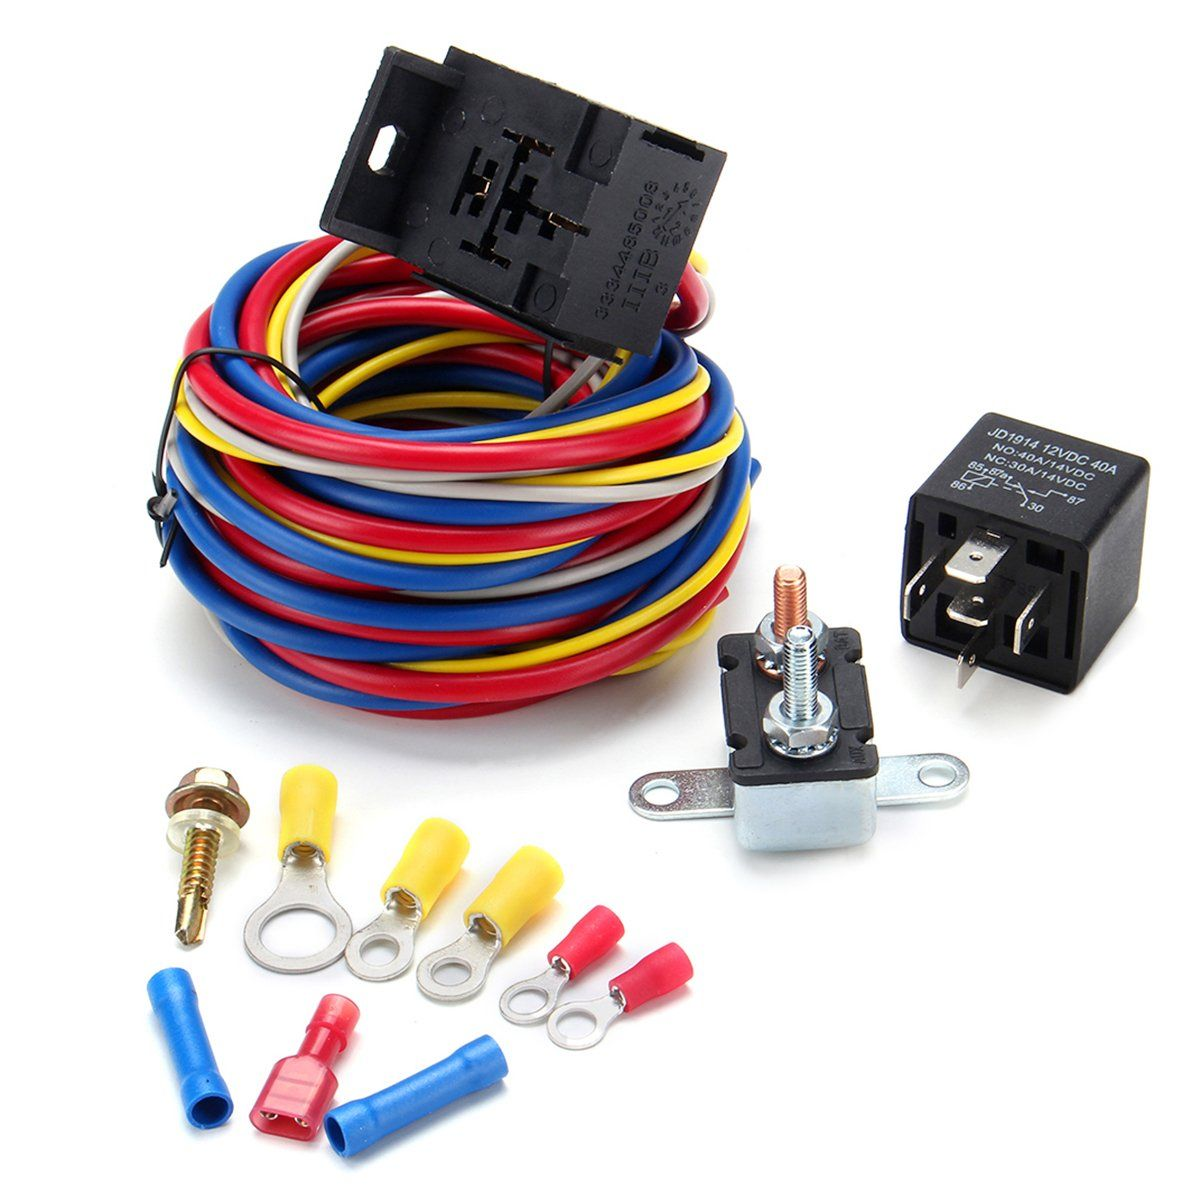 hight resolution of electric cooling fan wire harness kit relay circuit breaker wiring harness sbc sbf 302 350 454